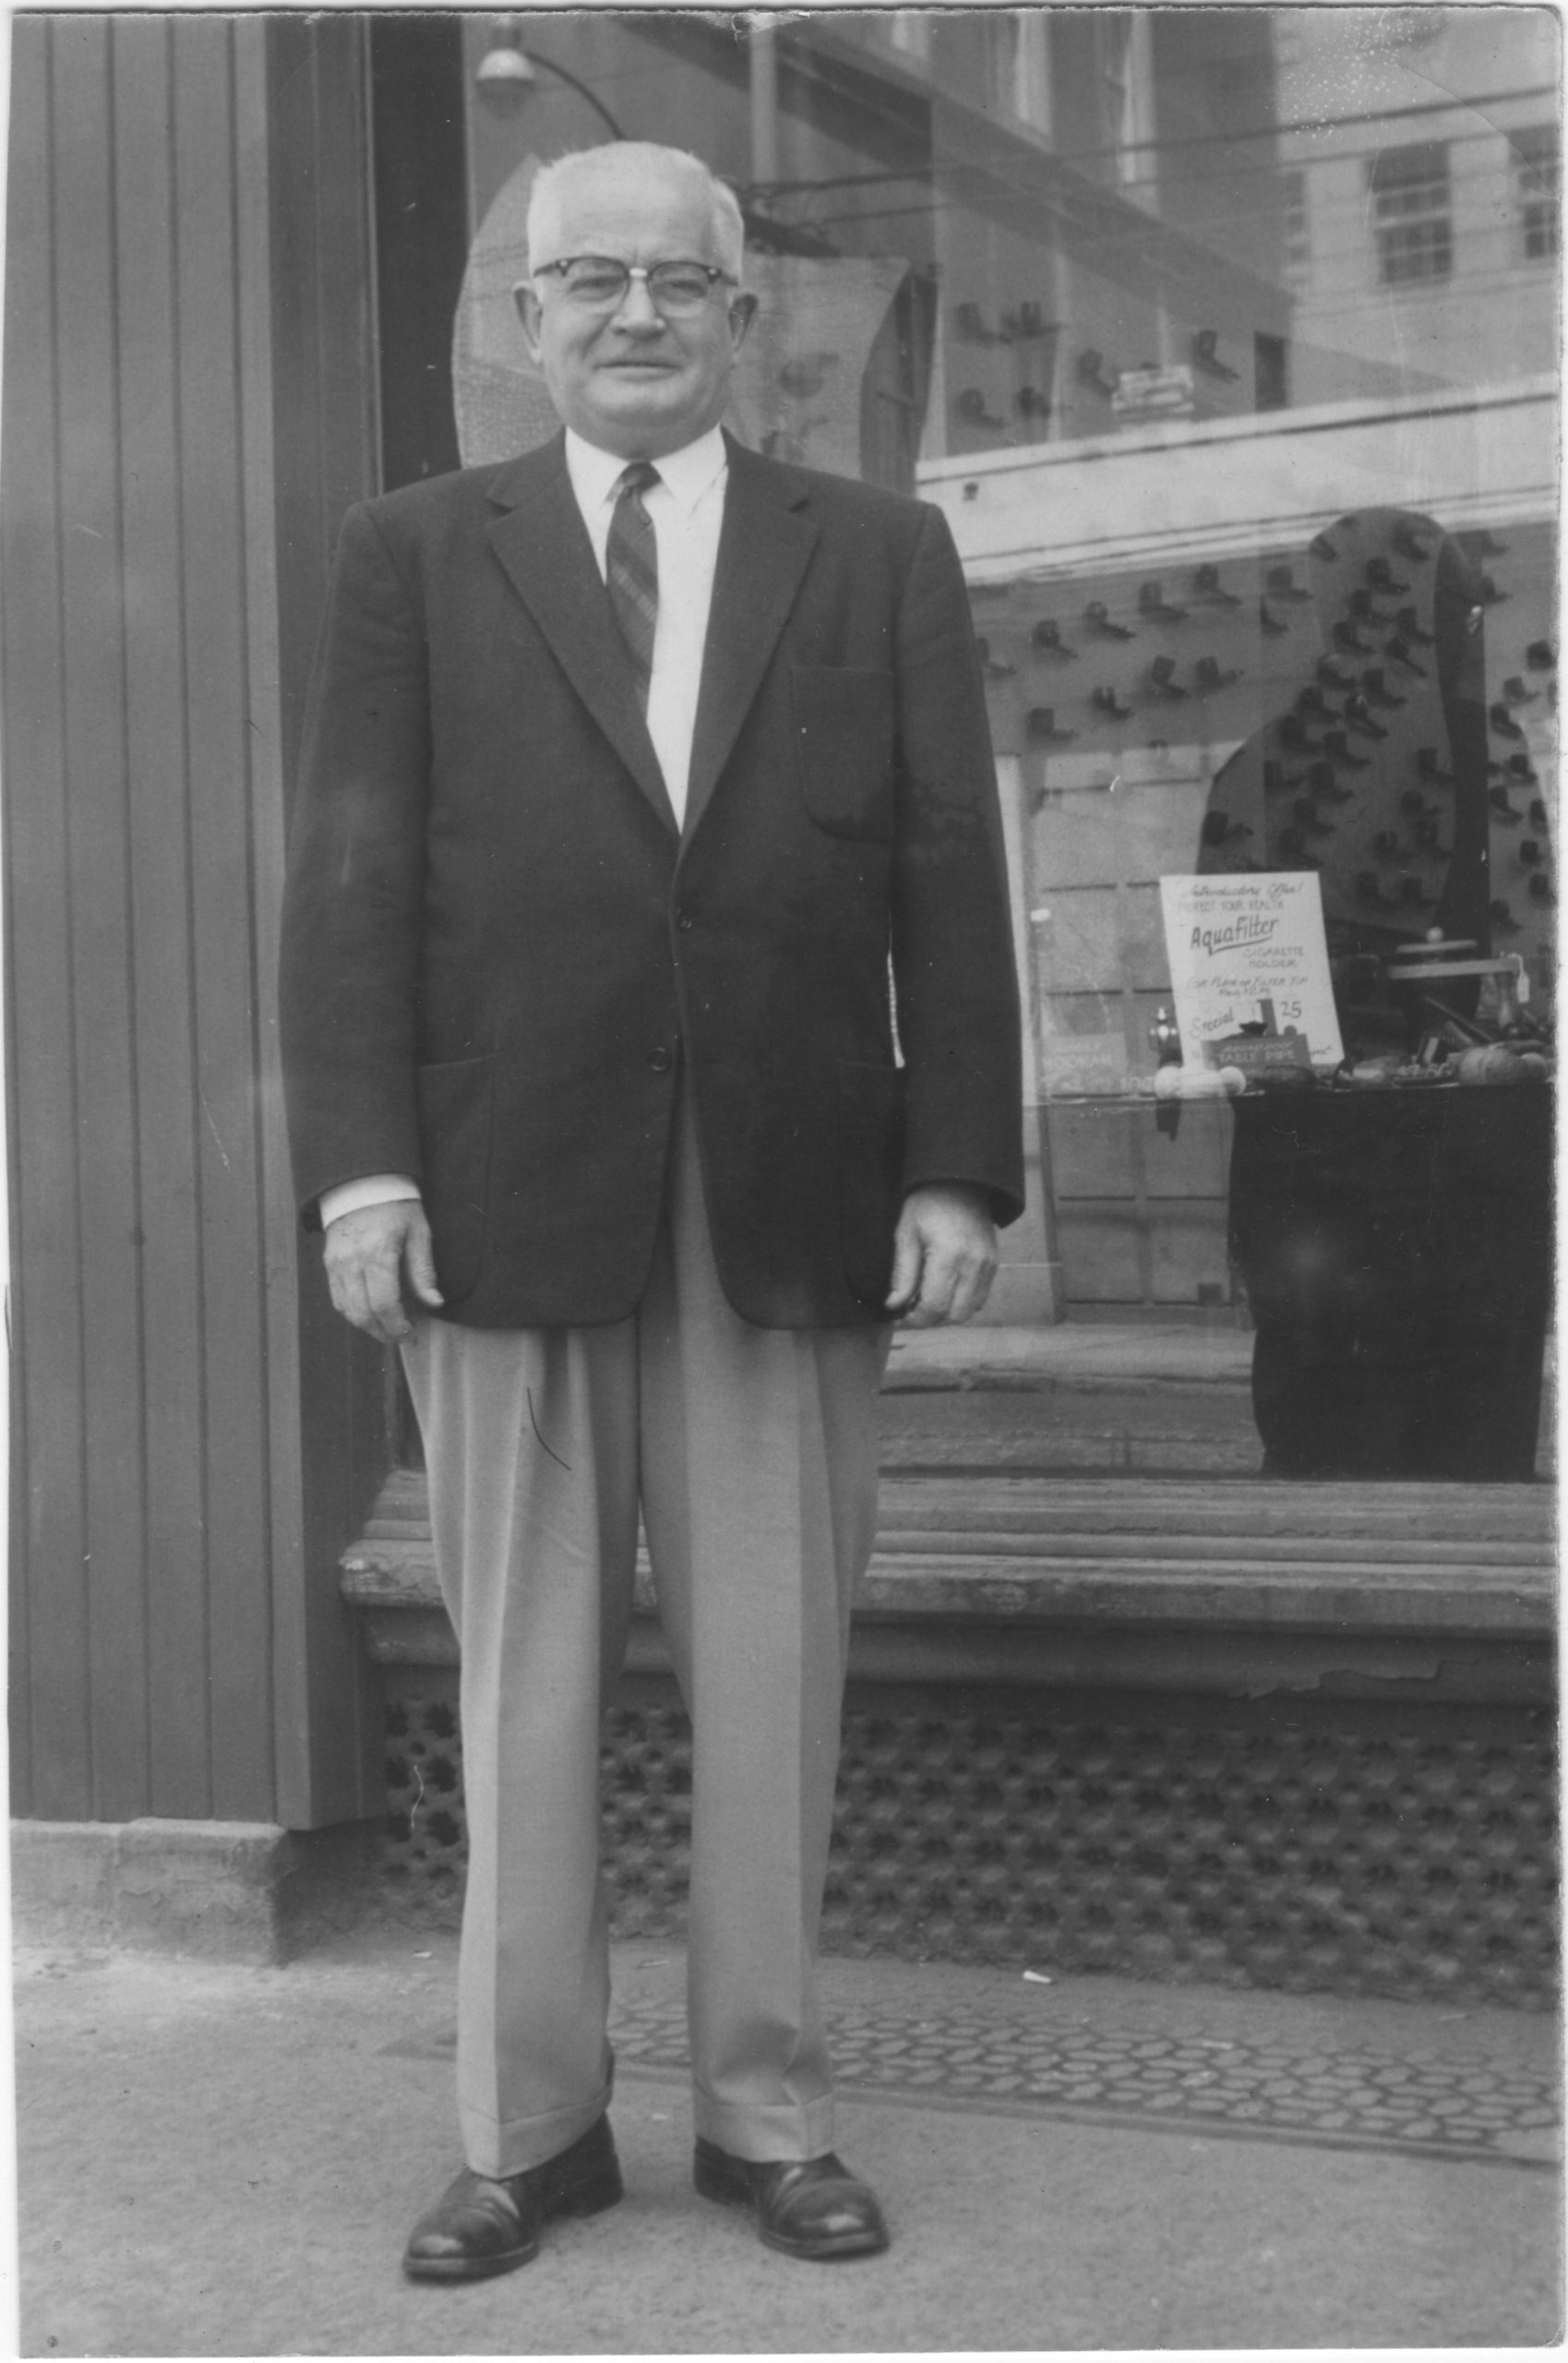 Photo of Harold Harber in front of Brigham's Pipe Store where he worked in the late 1950s (or early 1960s?)